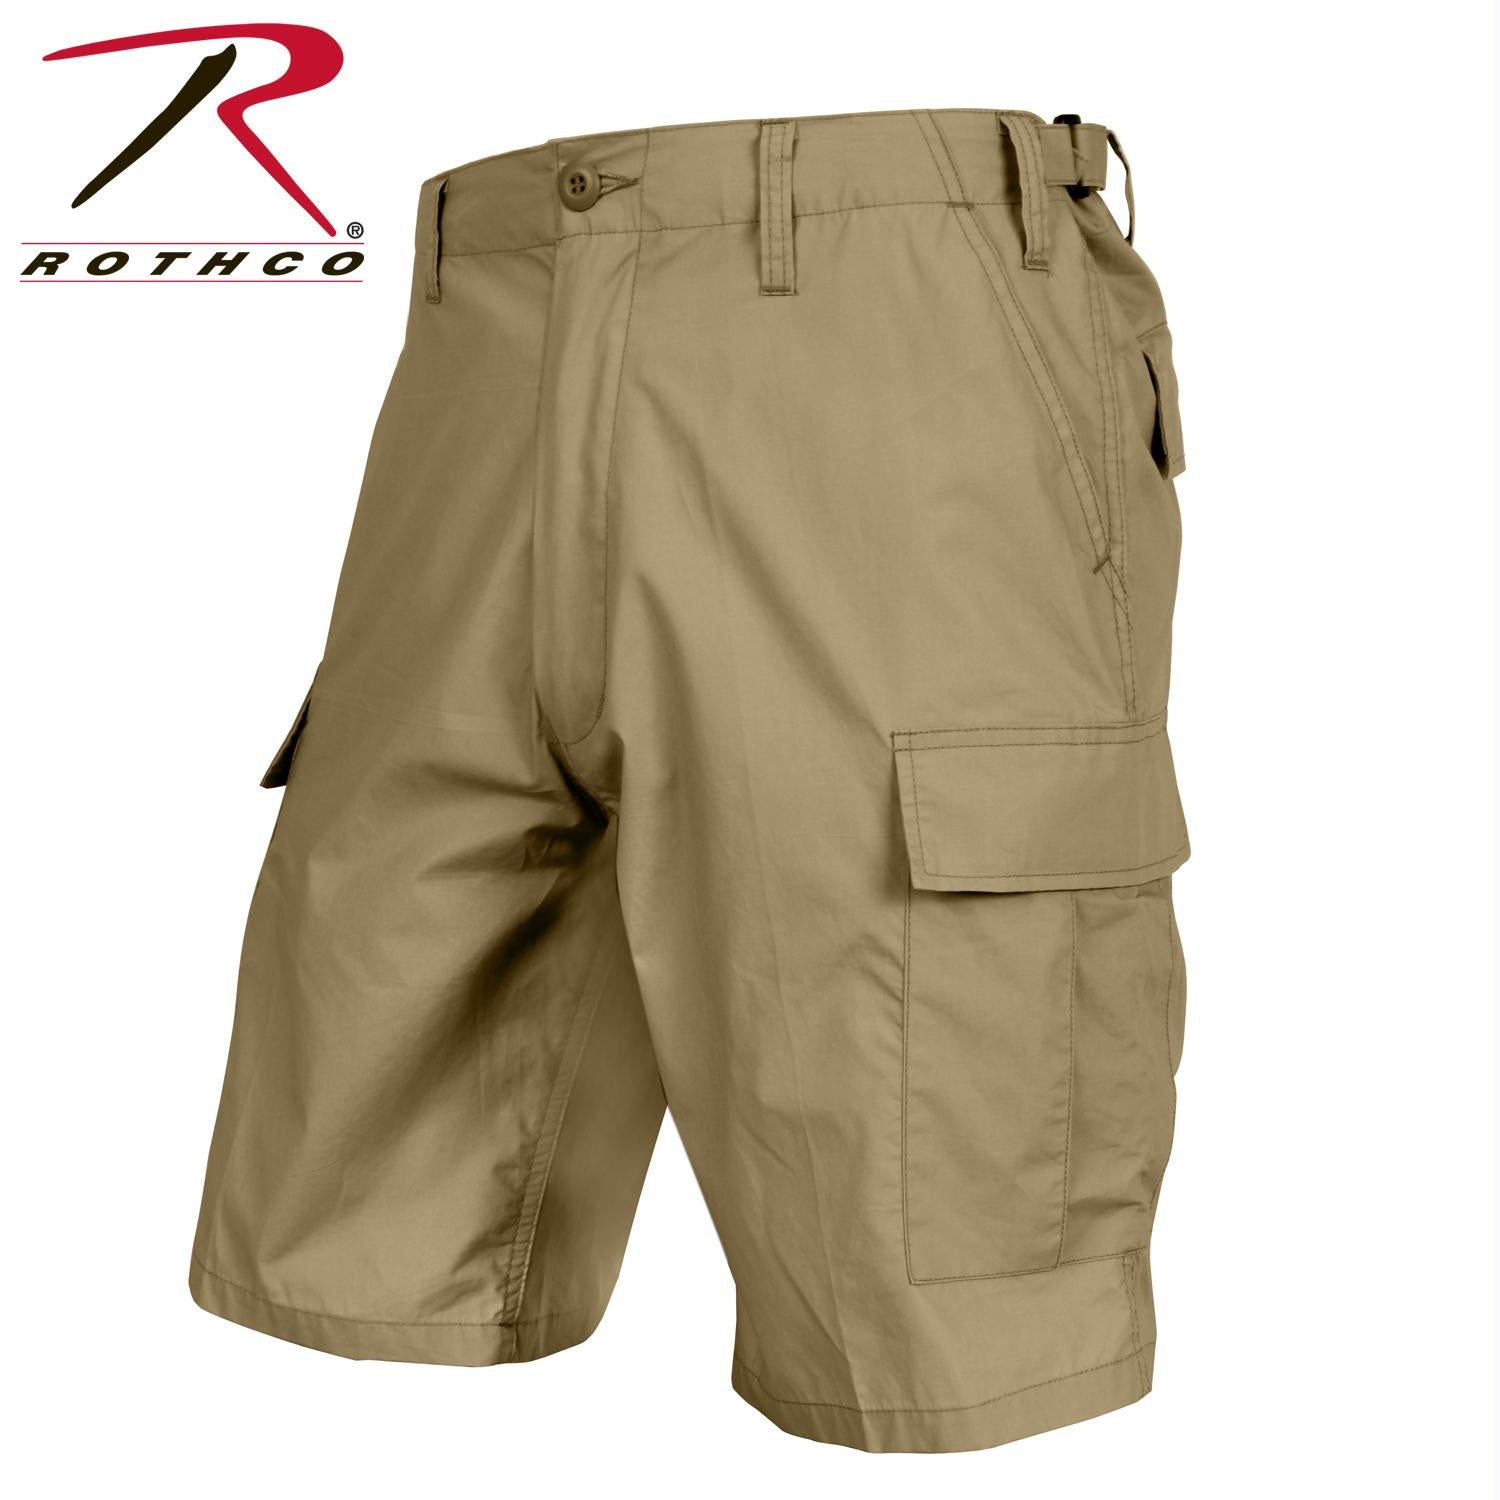 Rothco Lightweight Tactical BDU Shorts - Khaki / S